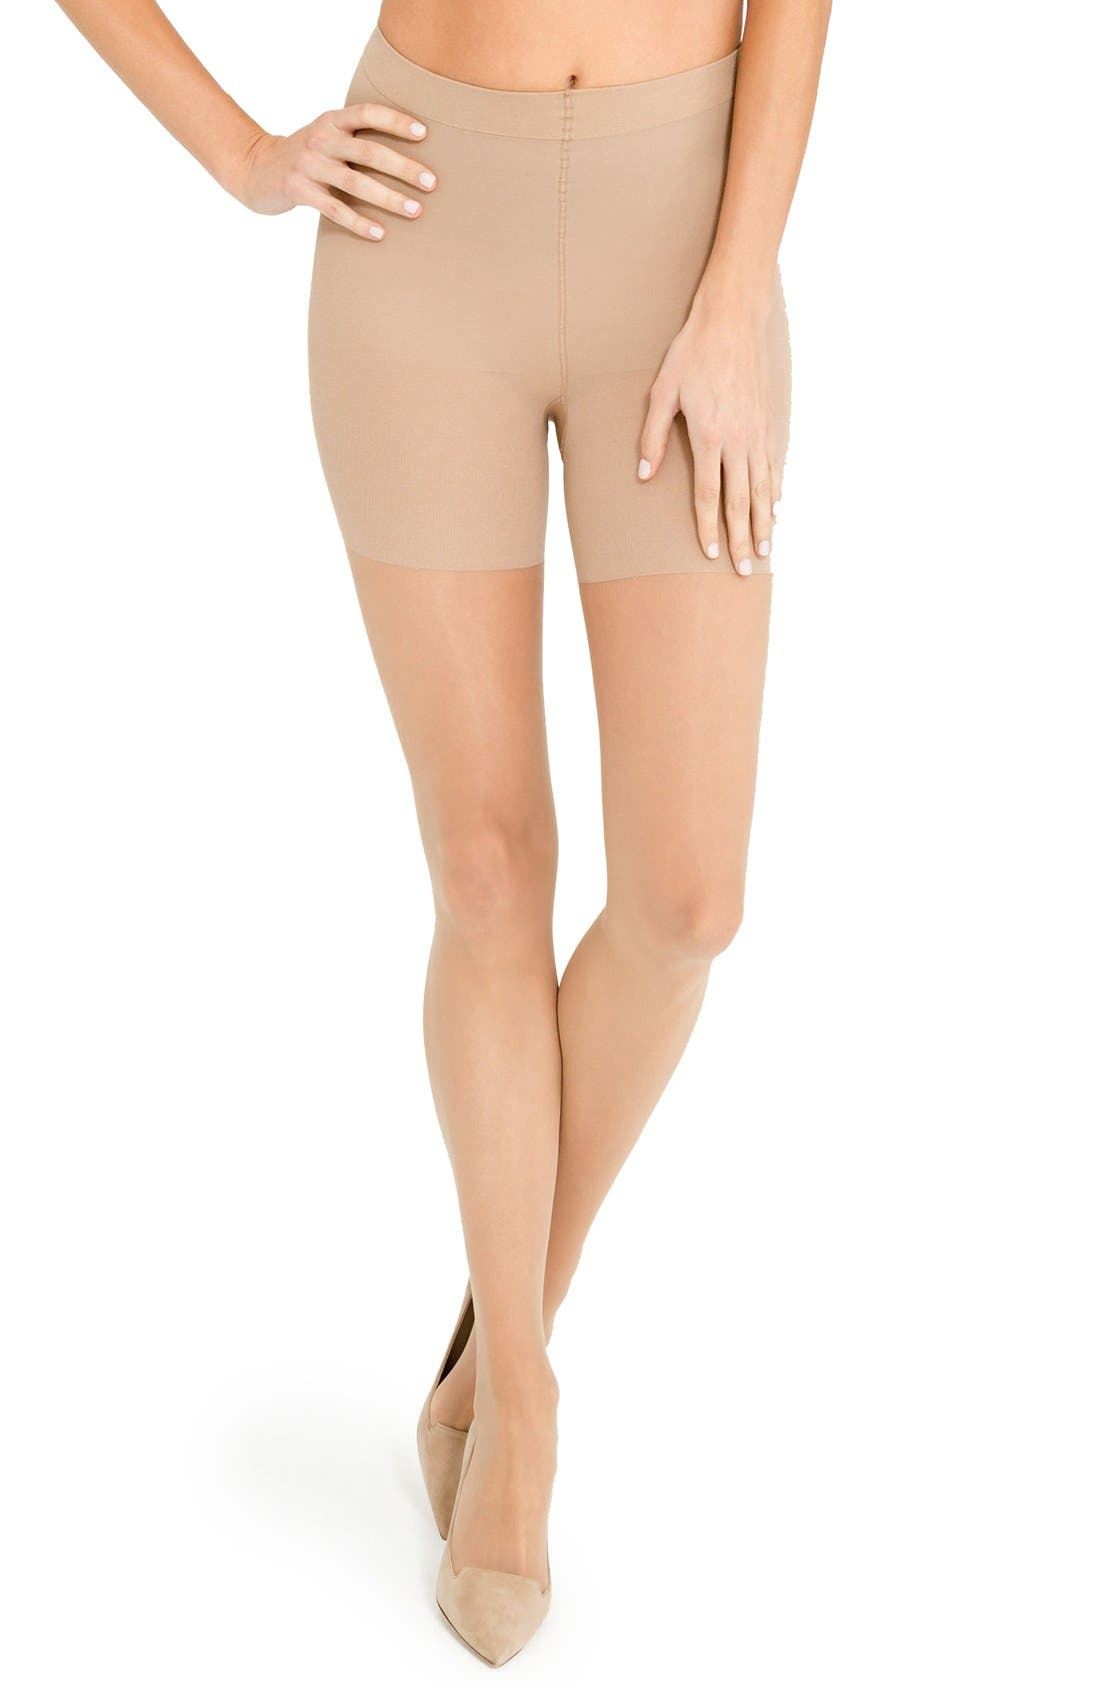 550092e1d26 UPC 843953274469 product image for Women s Spanx Luxe Leg Pantyhose